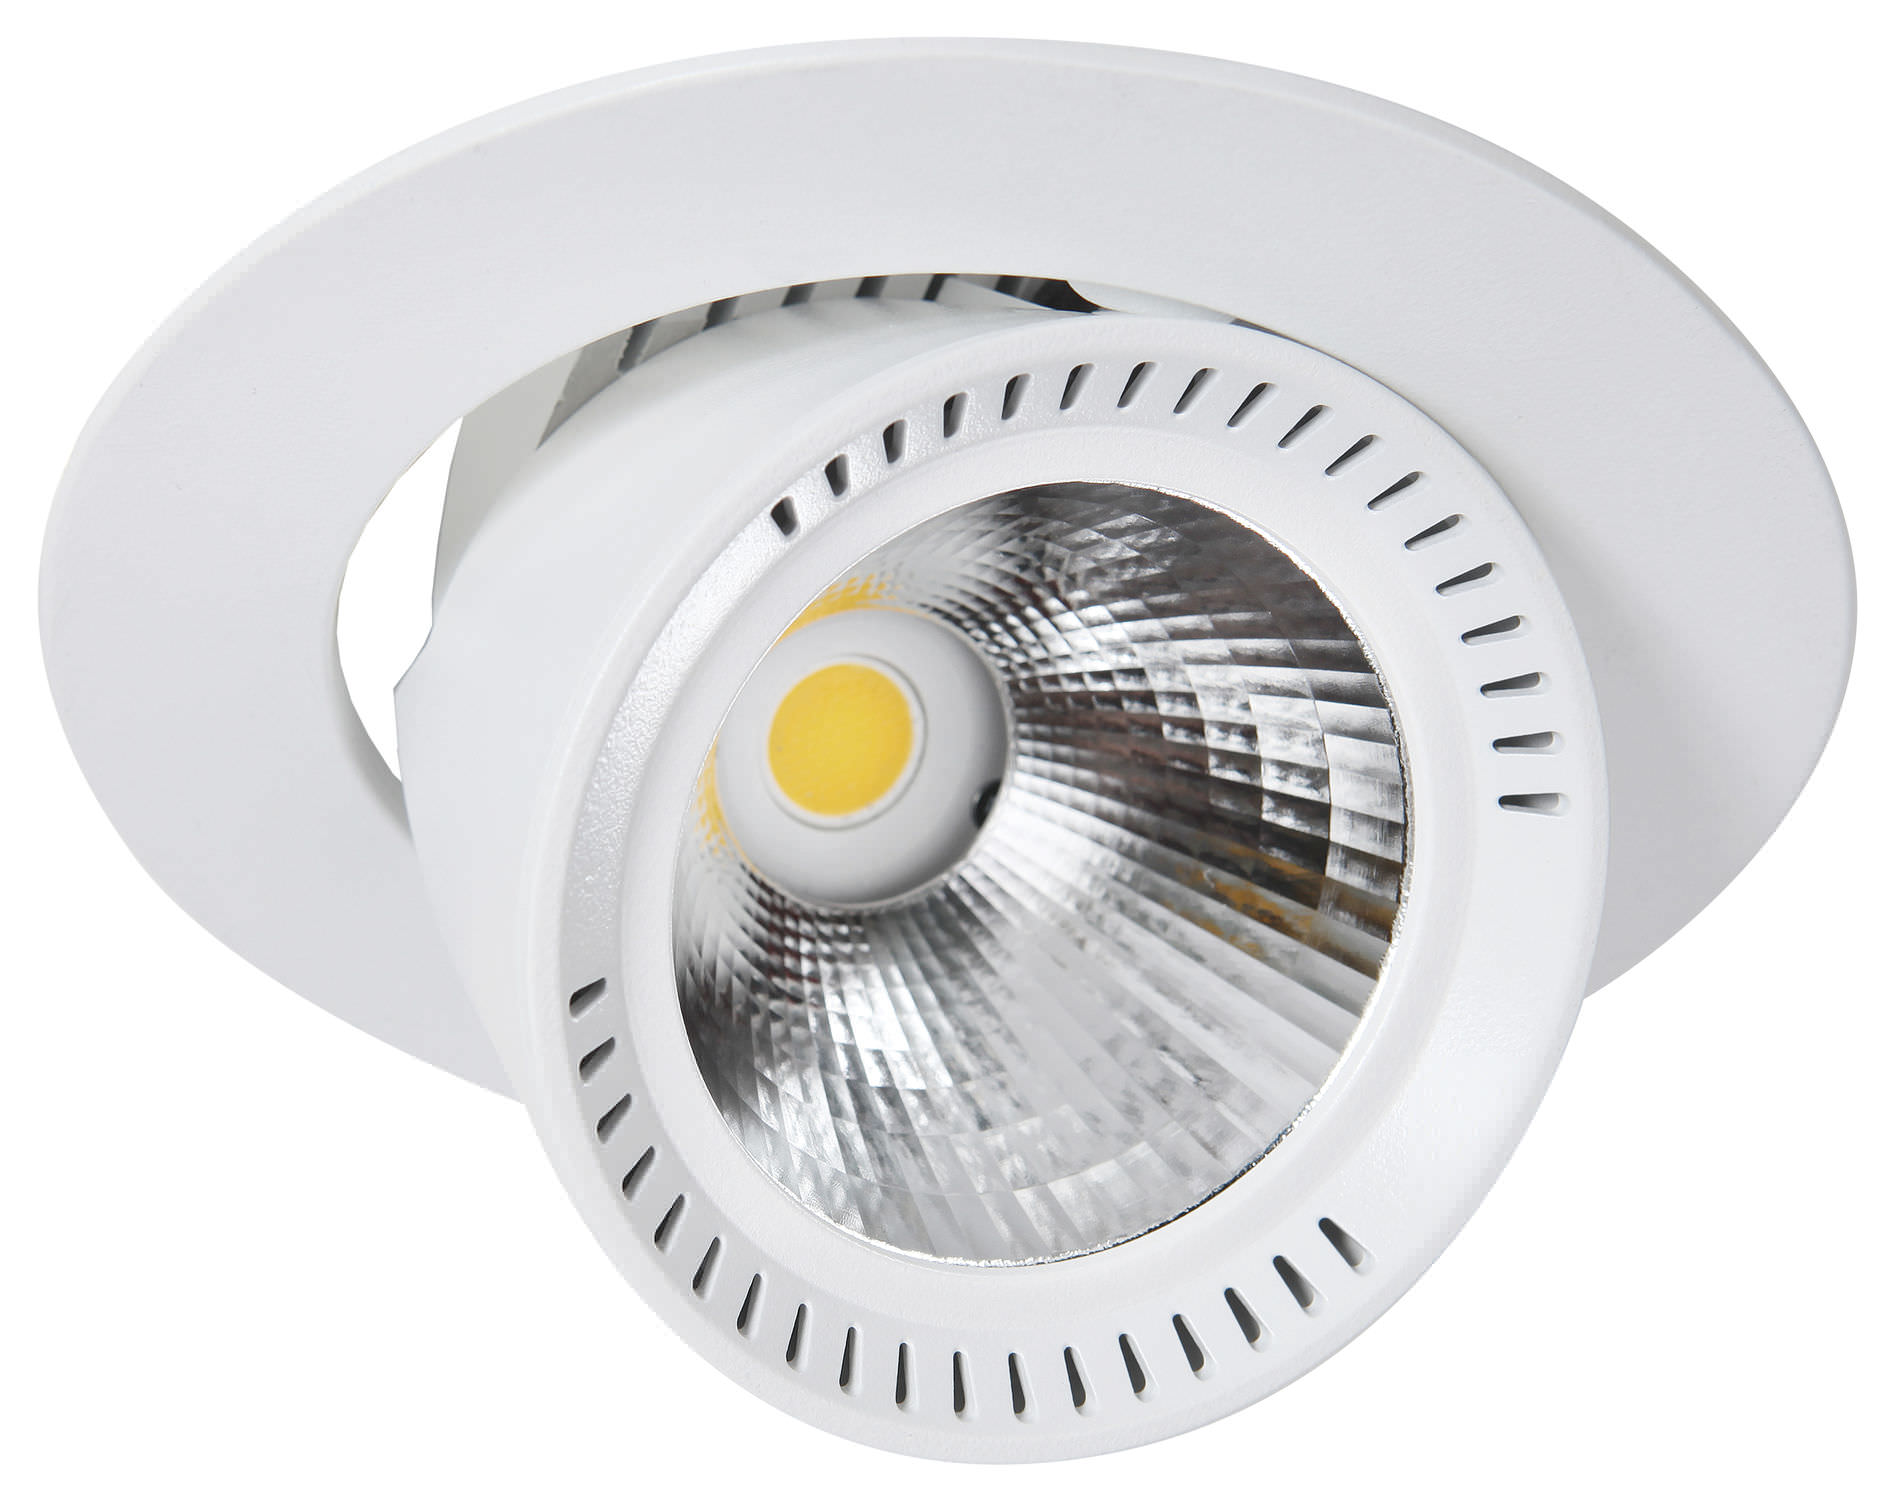 Spot Led Led Spotlights Manufacturer In Dhaka Bangladesh By One